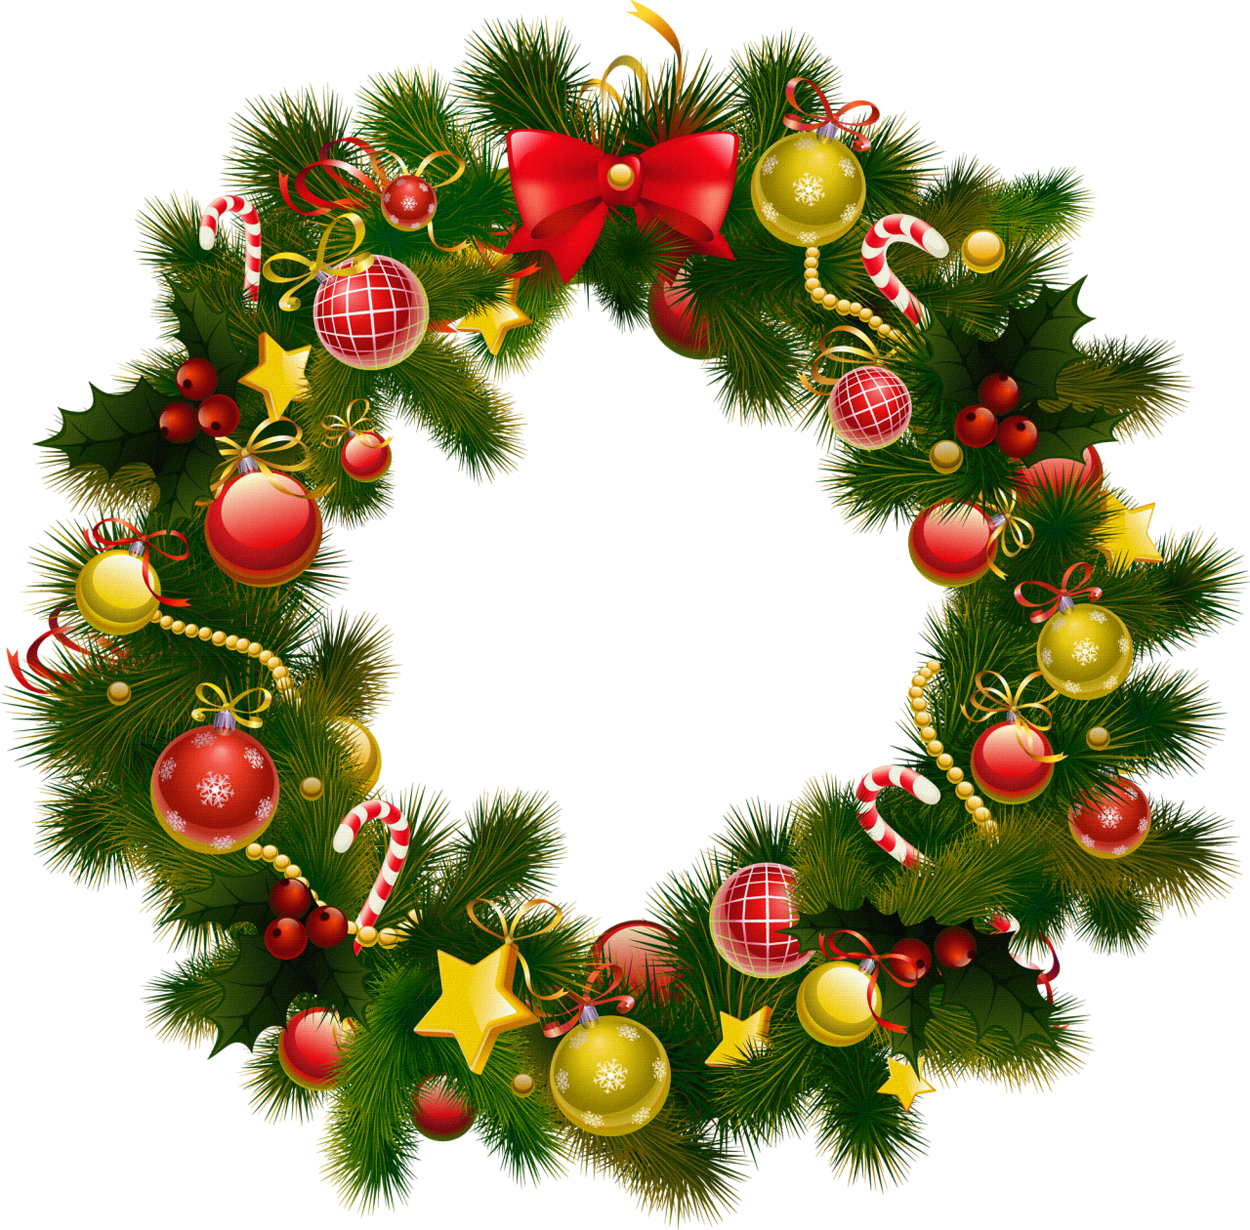 Christmas Wreath Border Clipart.